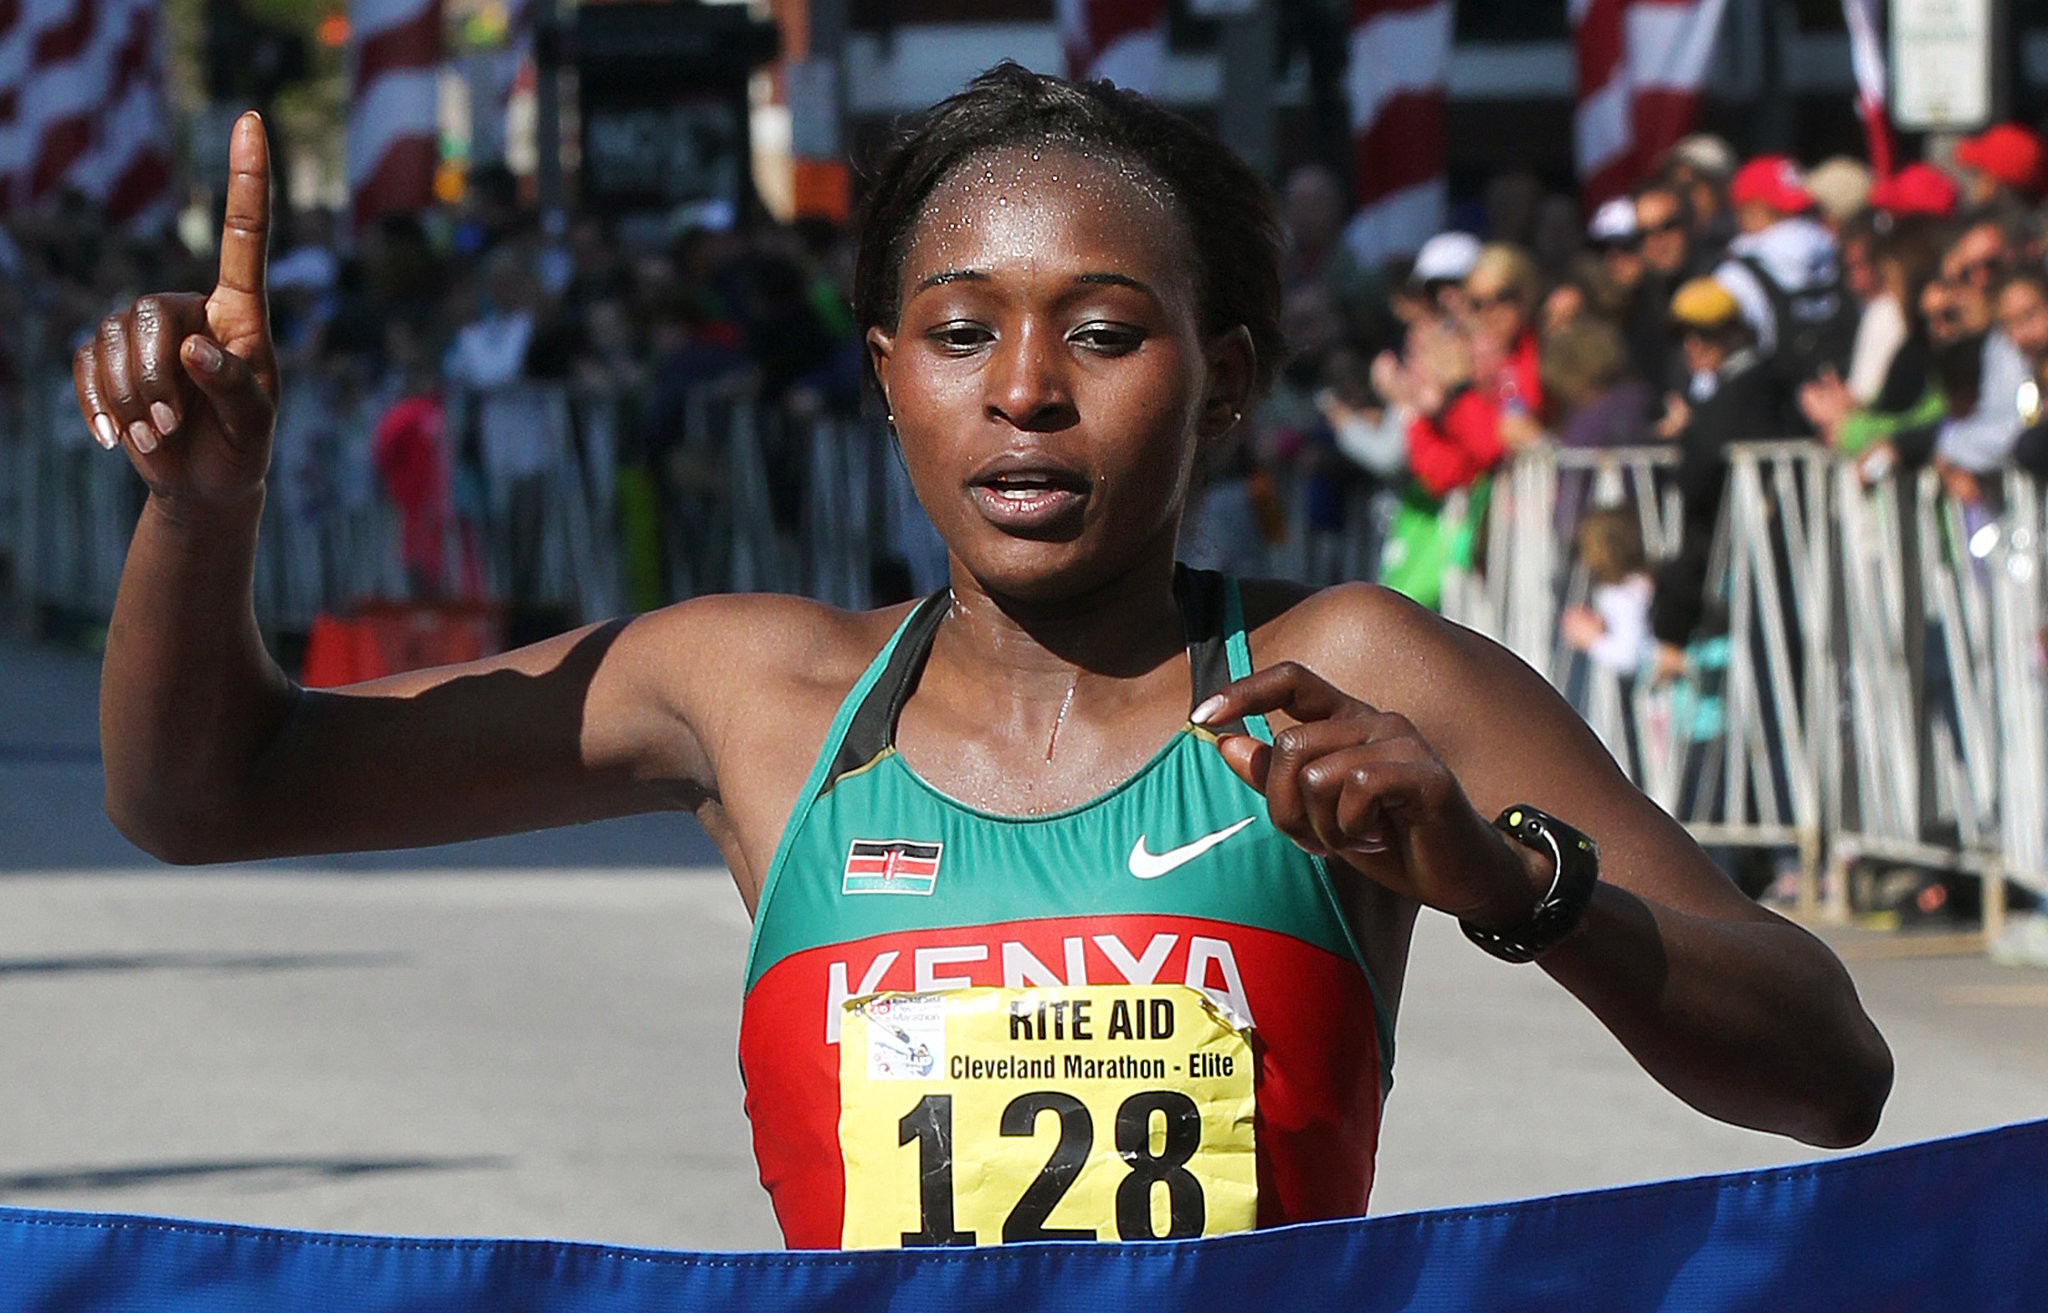 Kenyan Sarah Kiptoo the favorite at Grandma's Marathon